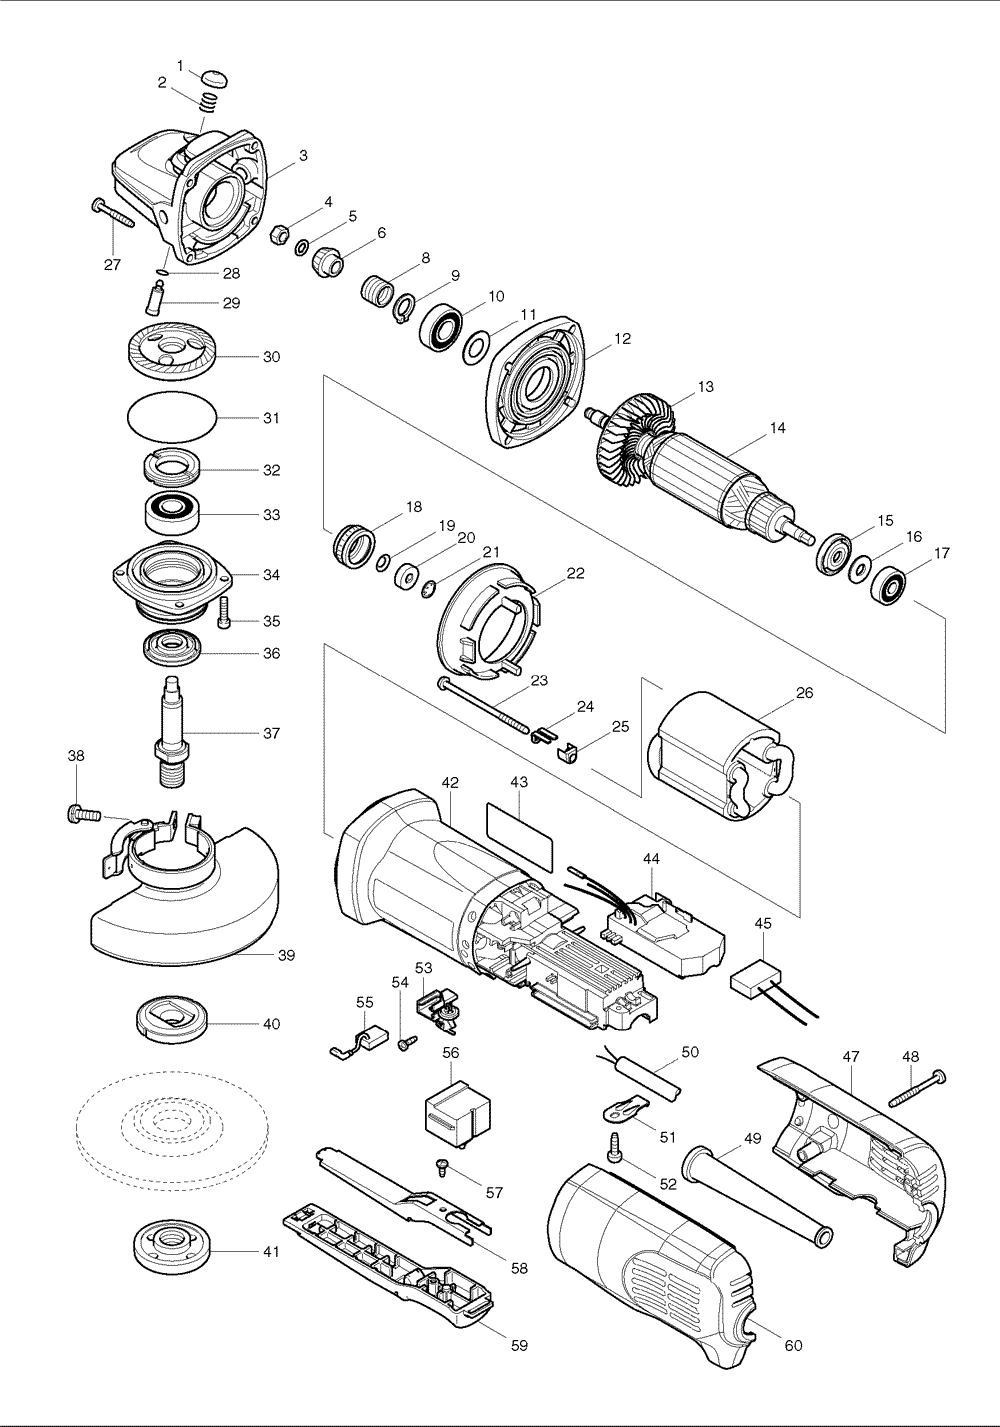 Makita table saw wiring diagram gallery wiring table and diagram